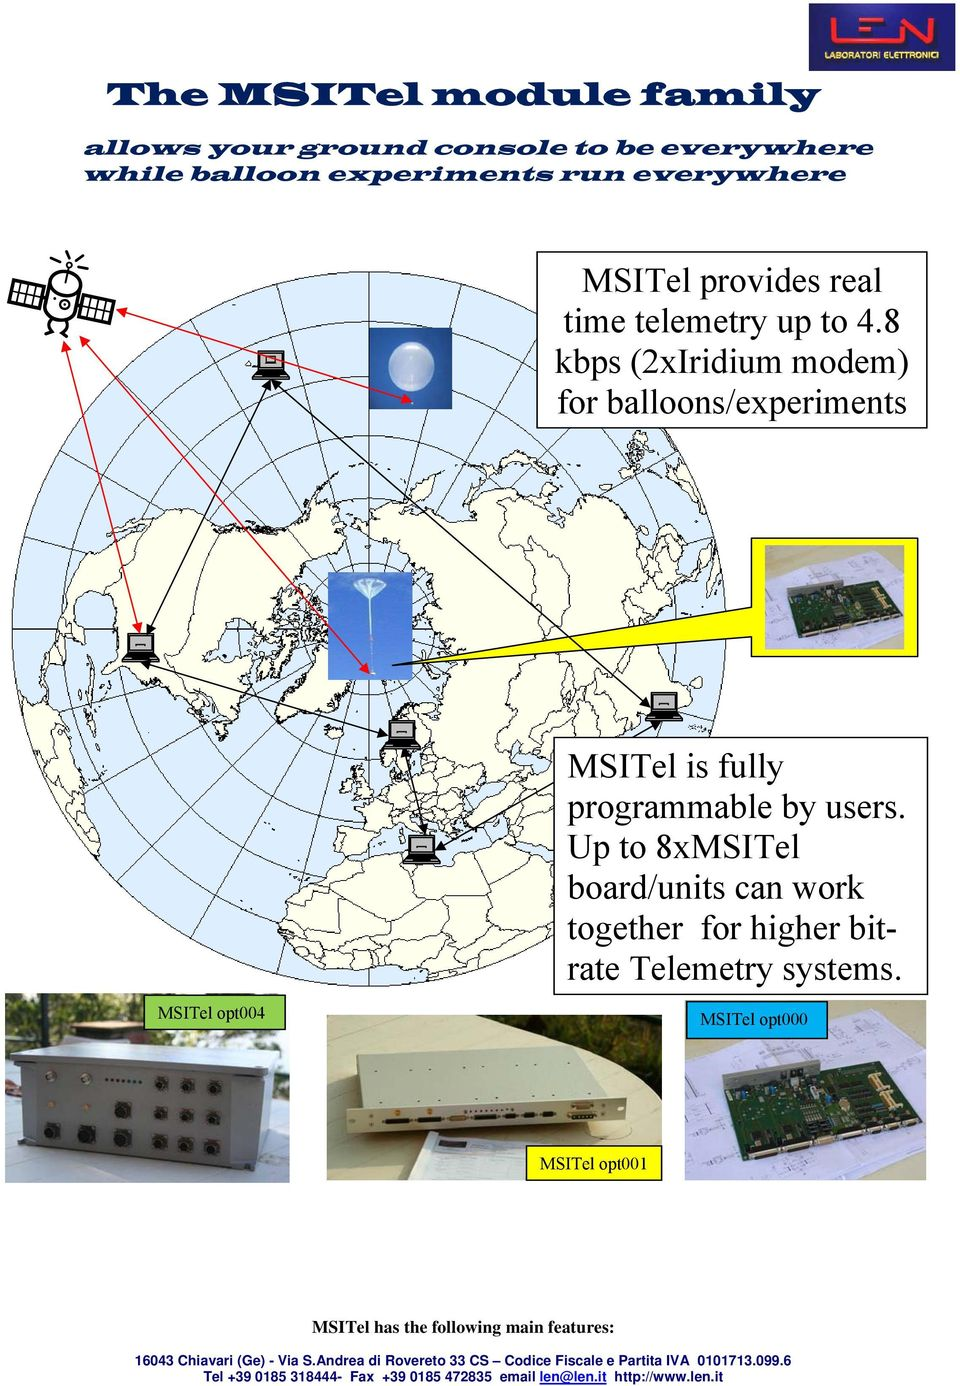 8 kbps (2xIridium modem) for balloons/experiments MSITel is fully programmable by users.